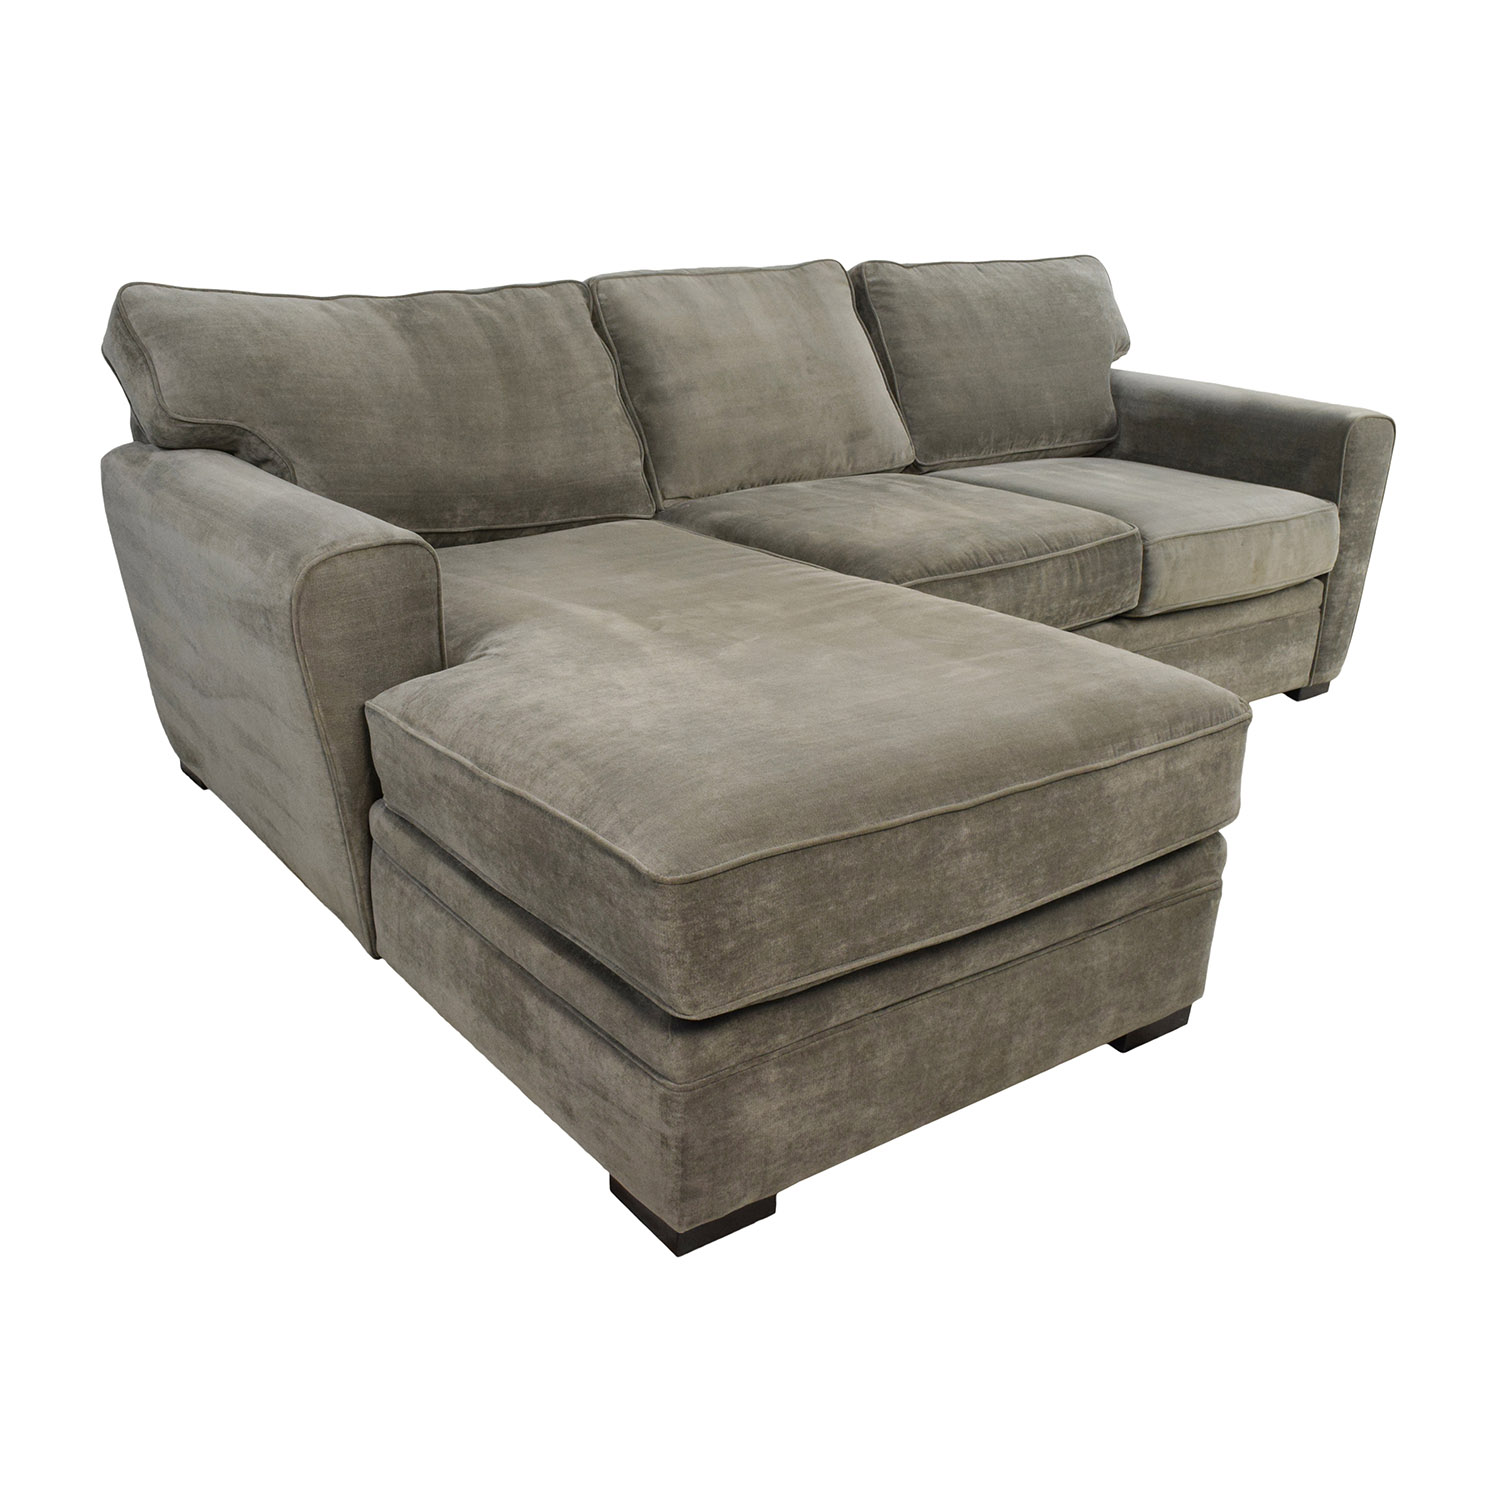 raymour and flanigan sectional sofas queen size low profile sofa sleeper sheet set 58 off grey